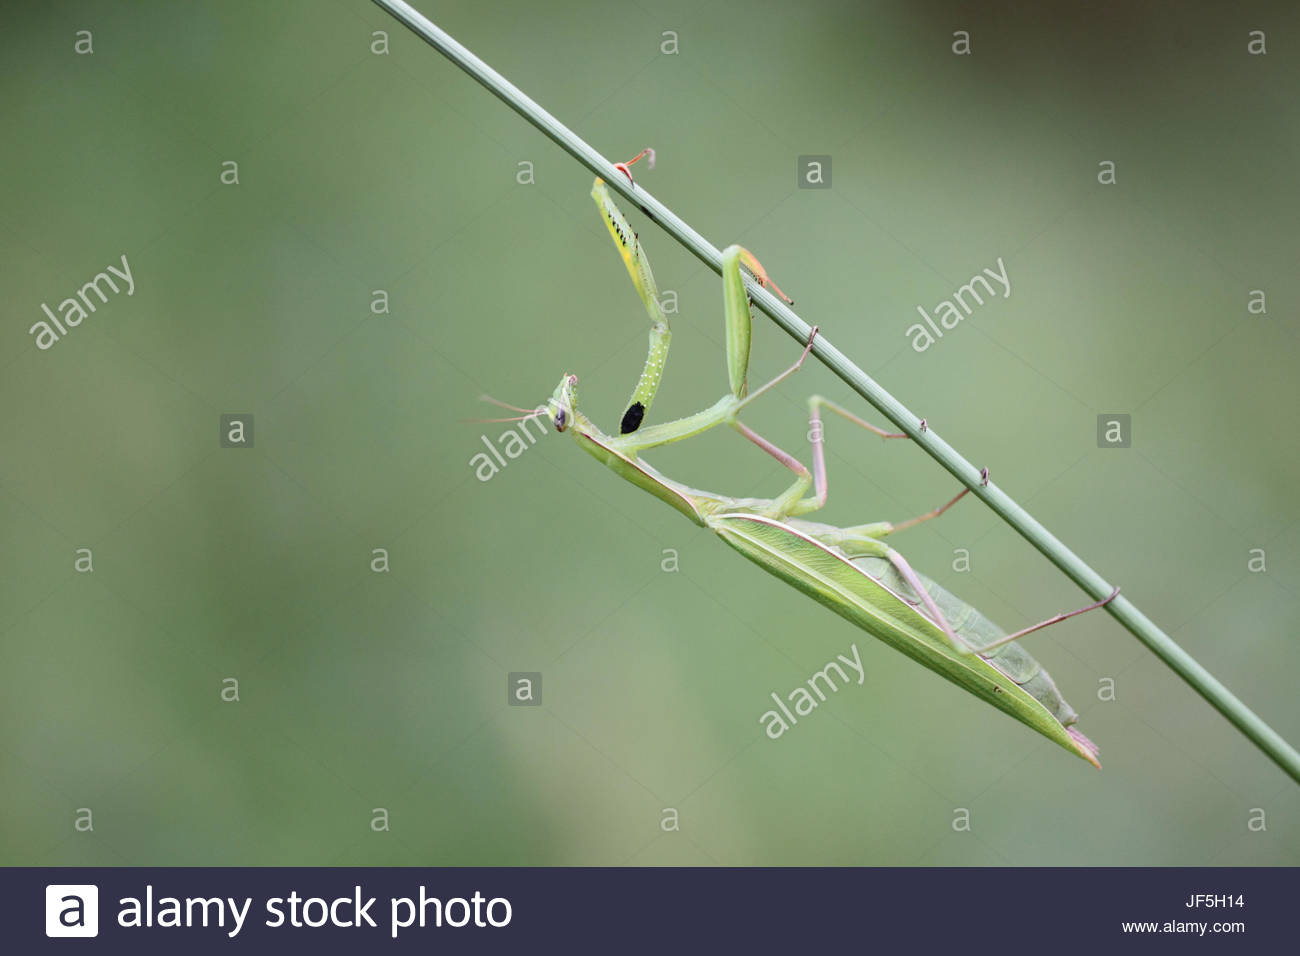 Portrait of a praying mantis, Mantis religiosa, on a foxtail stem, Setaria species. - Stock Image